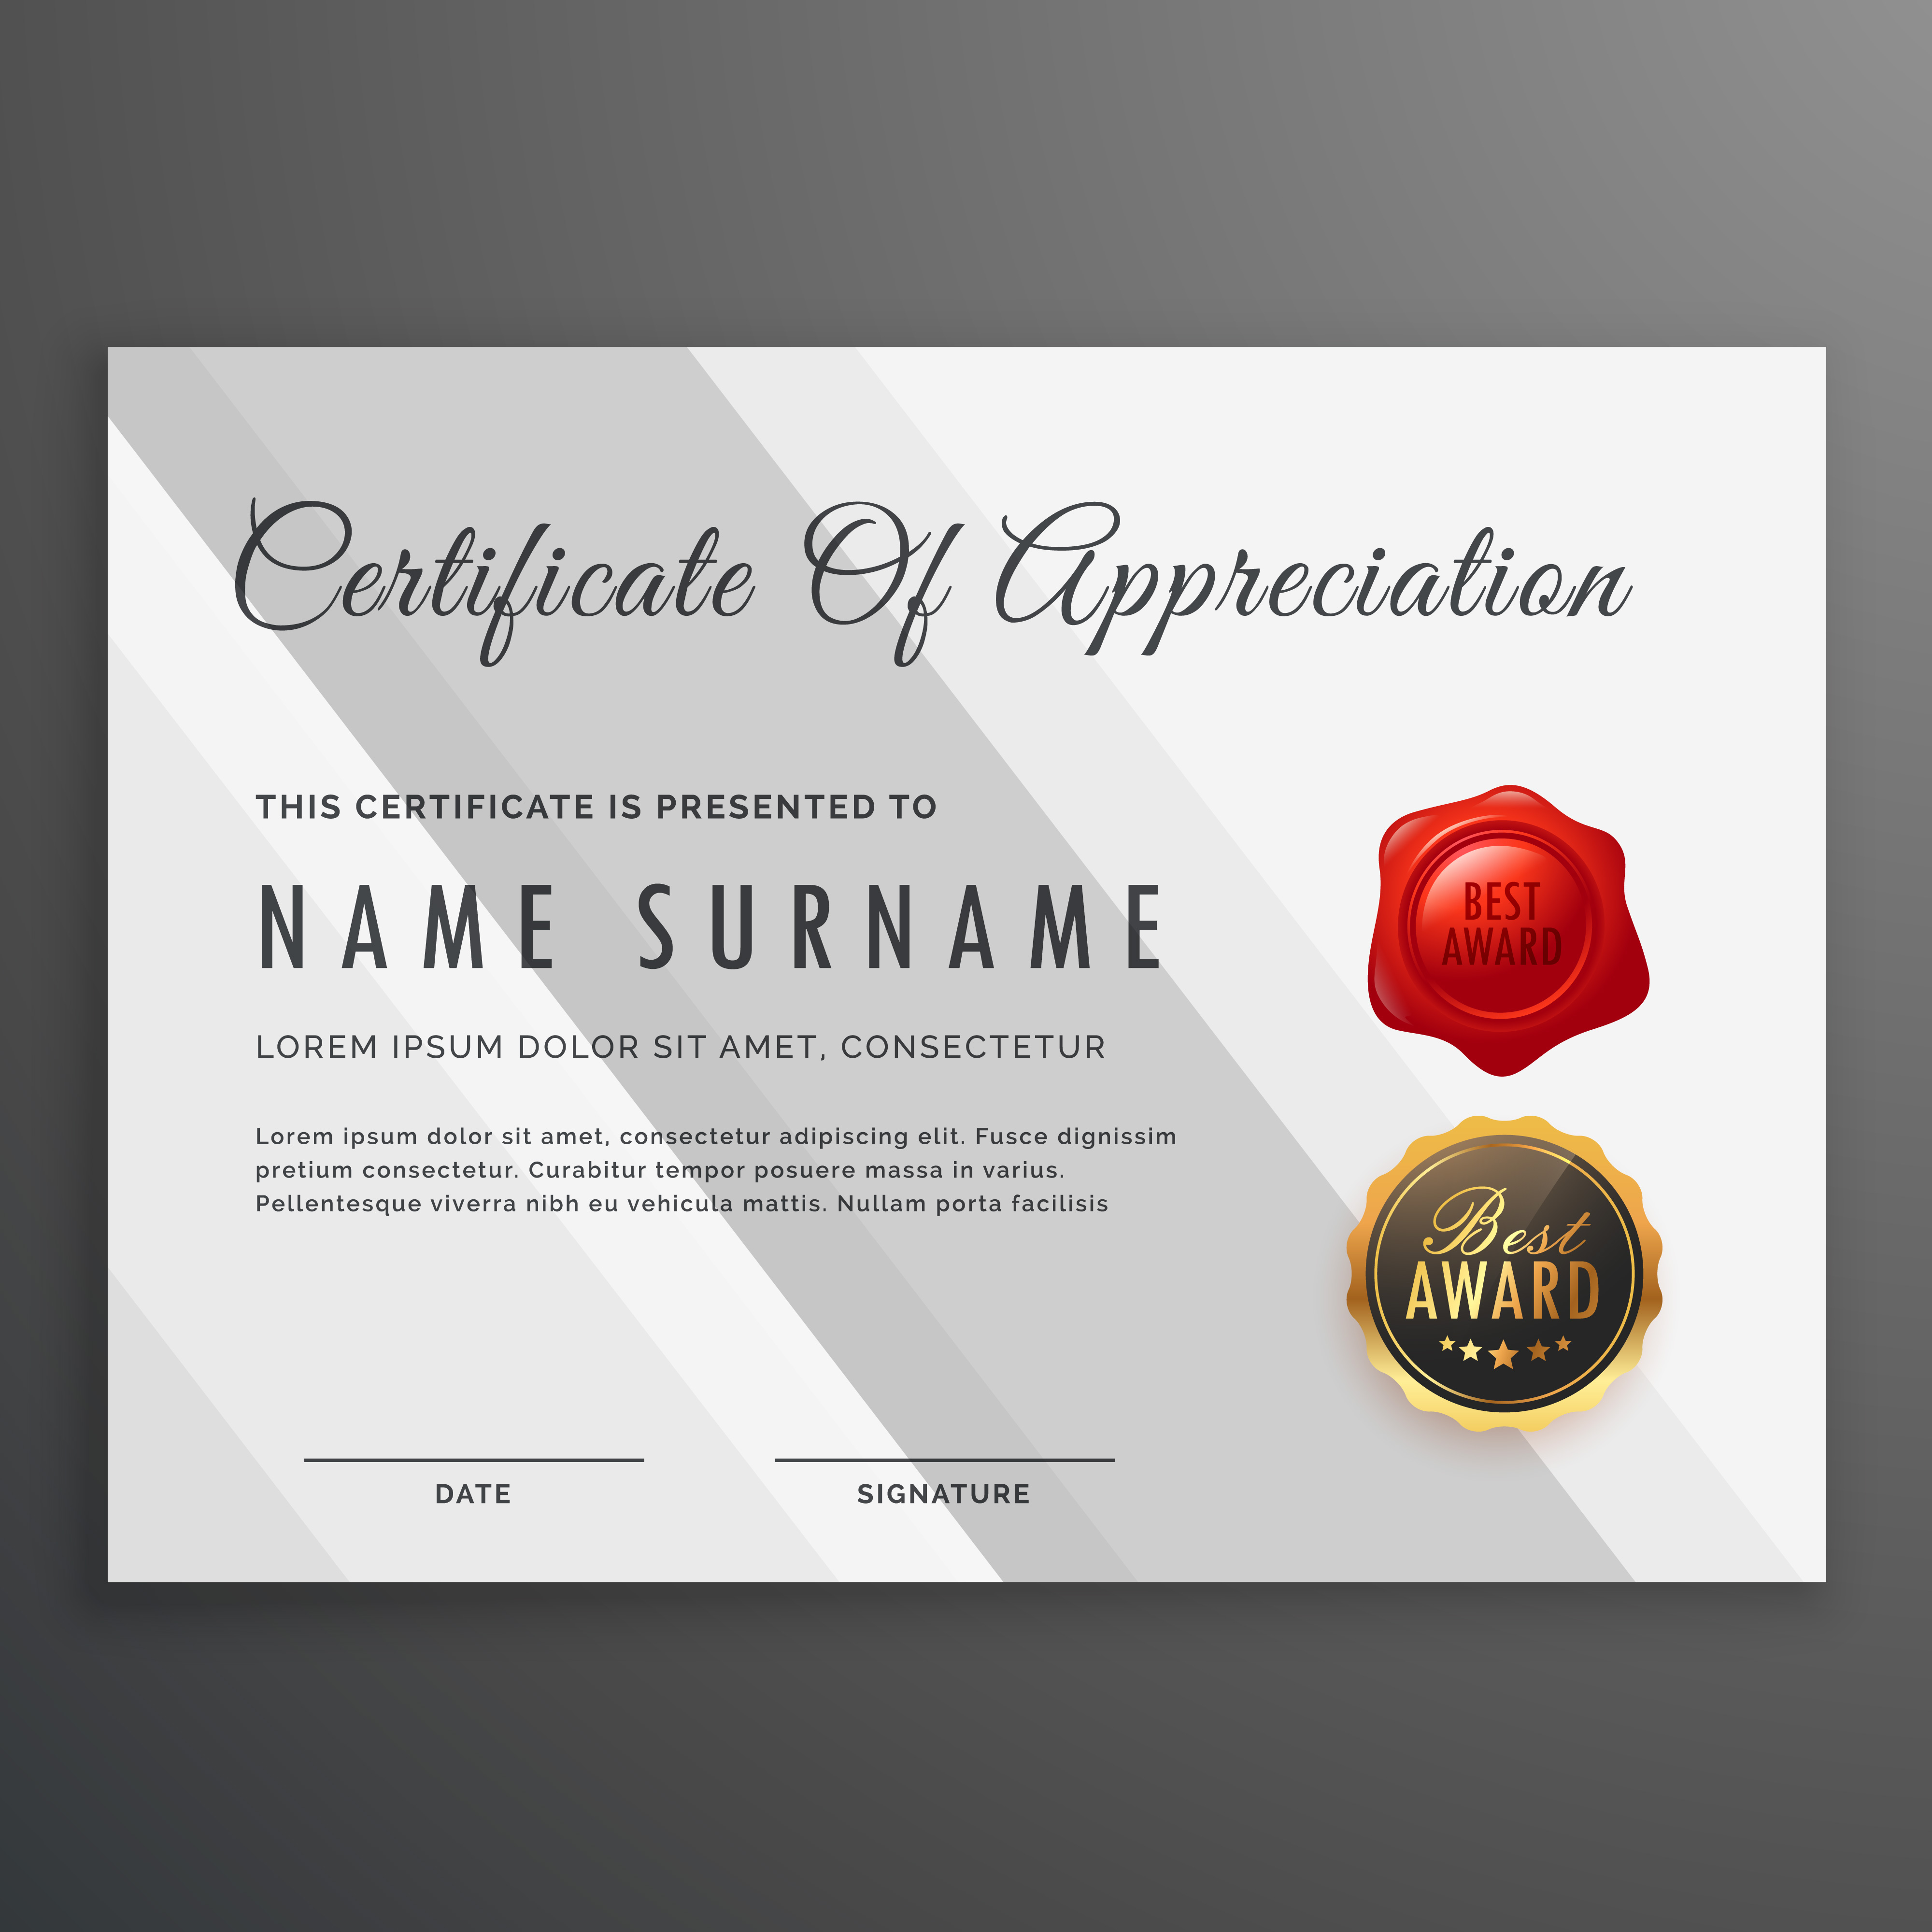 Simple white certificate template design download free vector simple white certificate template design download free vector art stock graphics images xflitez Image collections